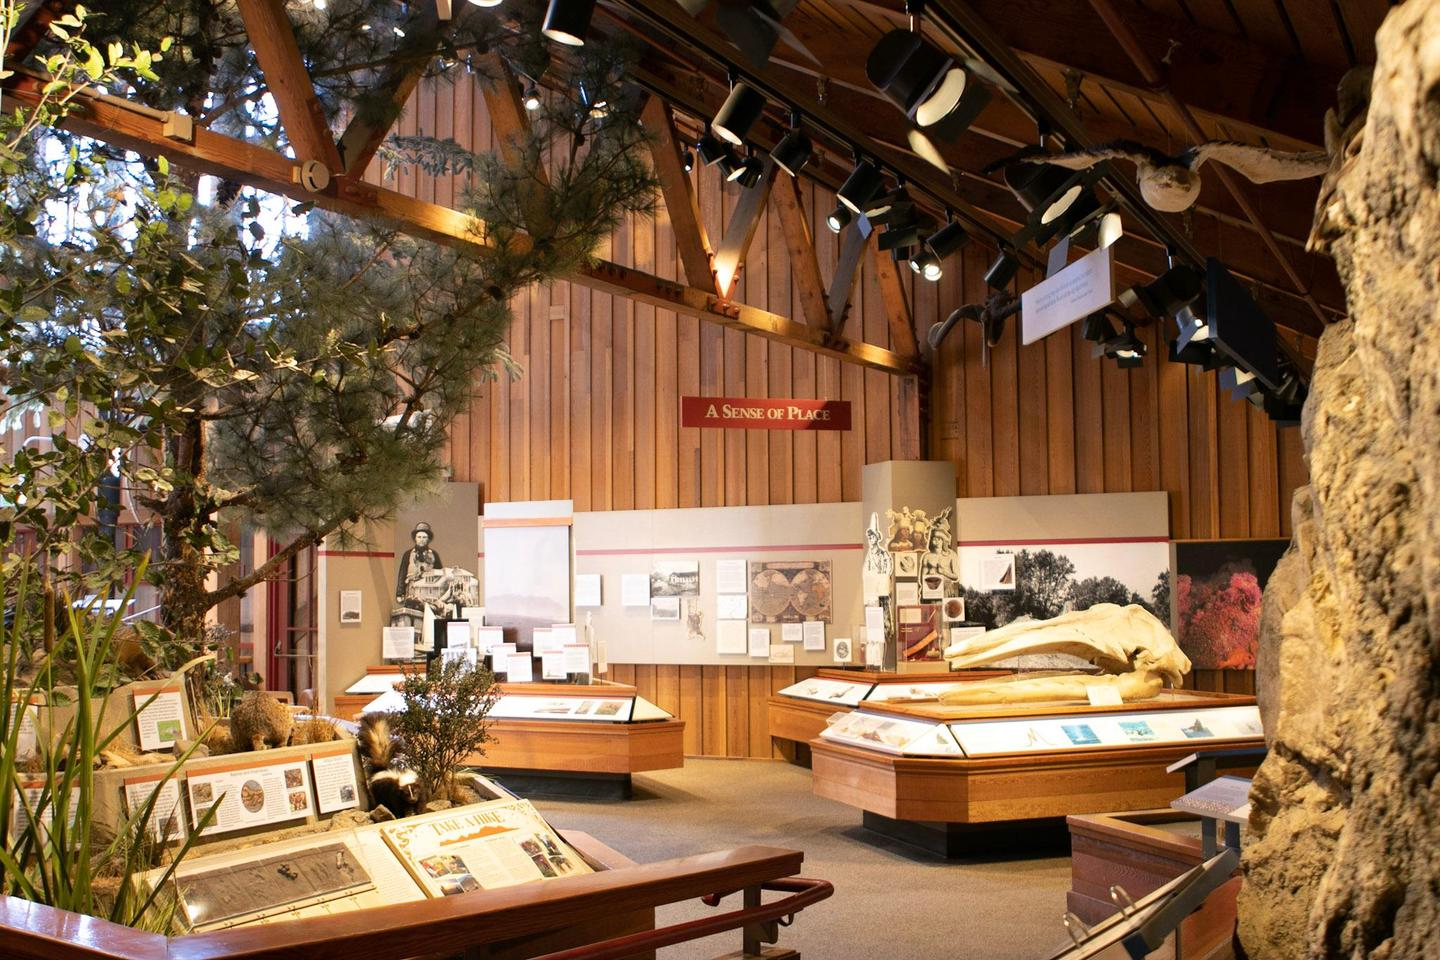 Bear Valley Visitor Center ExhibitsLearn about the thousands of years of human history at Point Reyes.